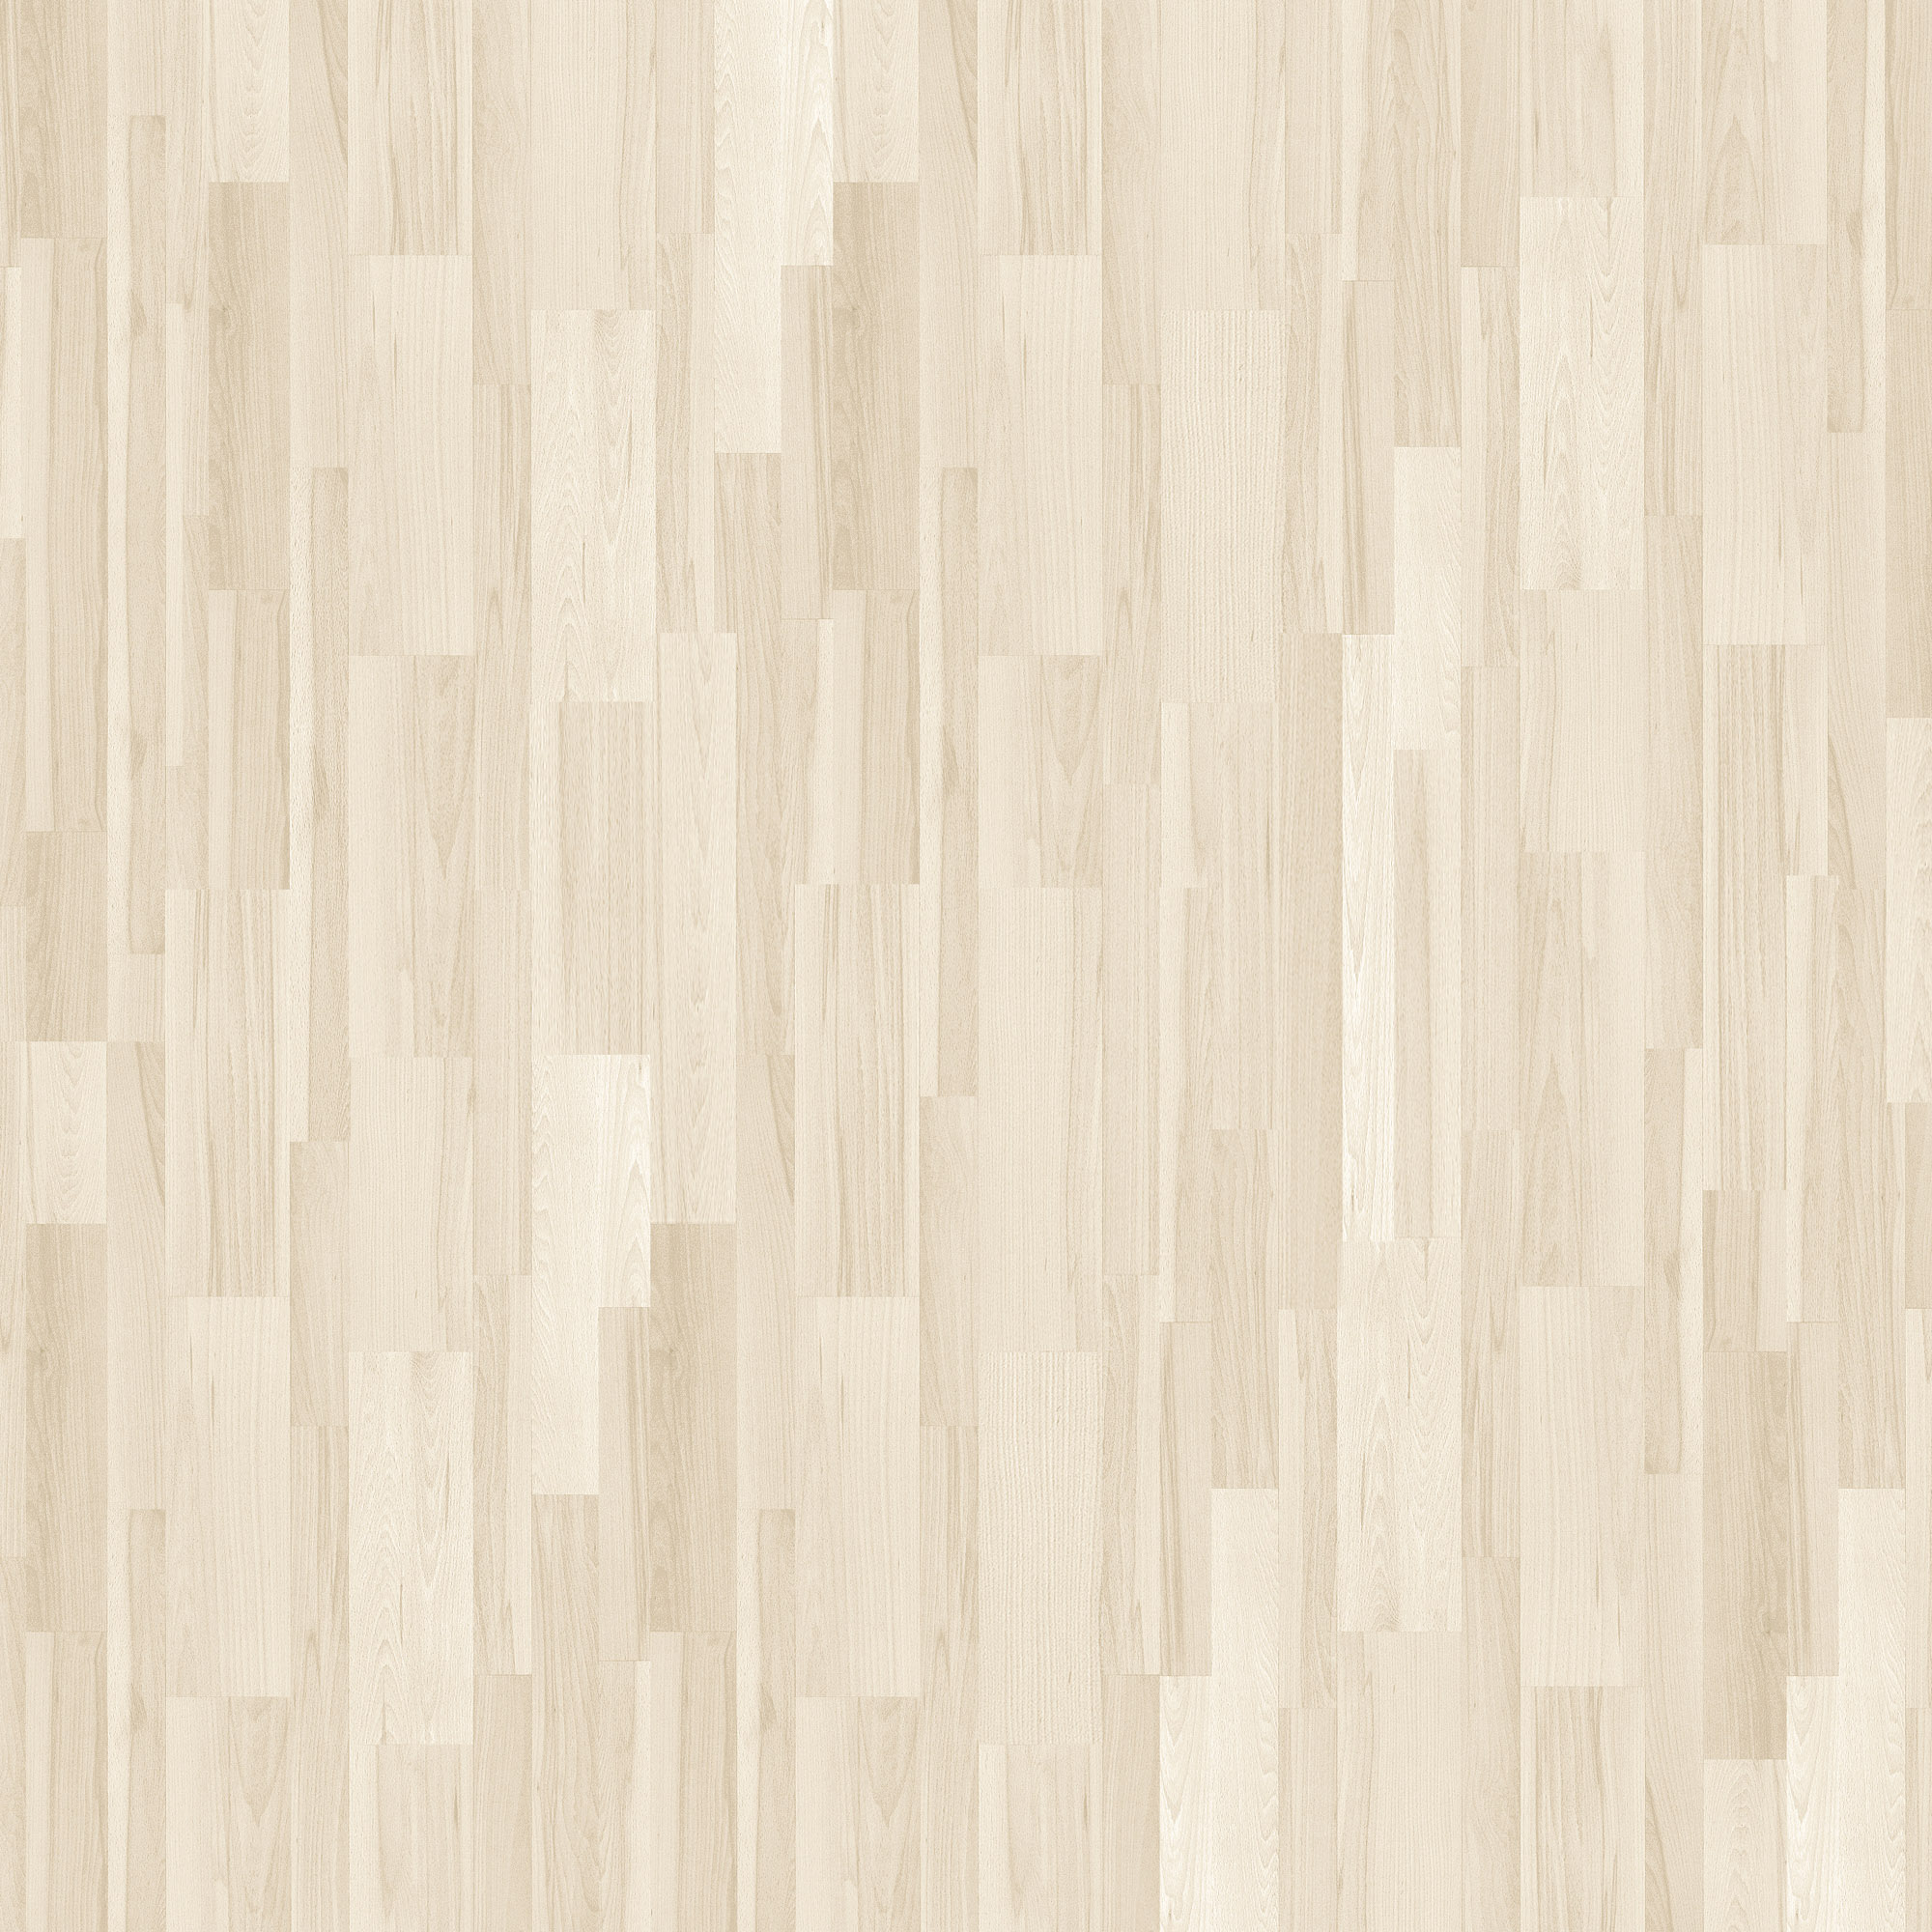 Wood planks white hardwood floor white hardwood floor jpg